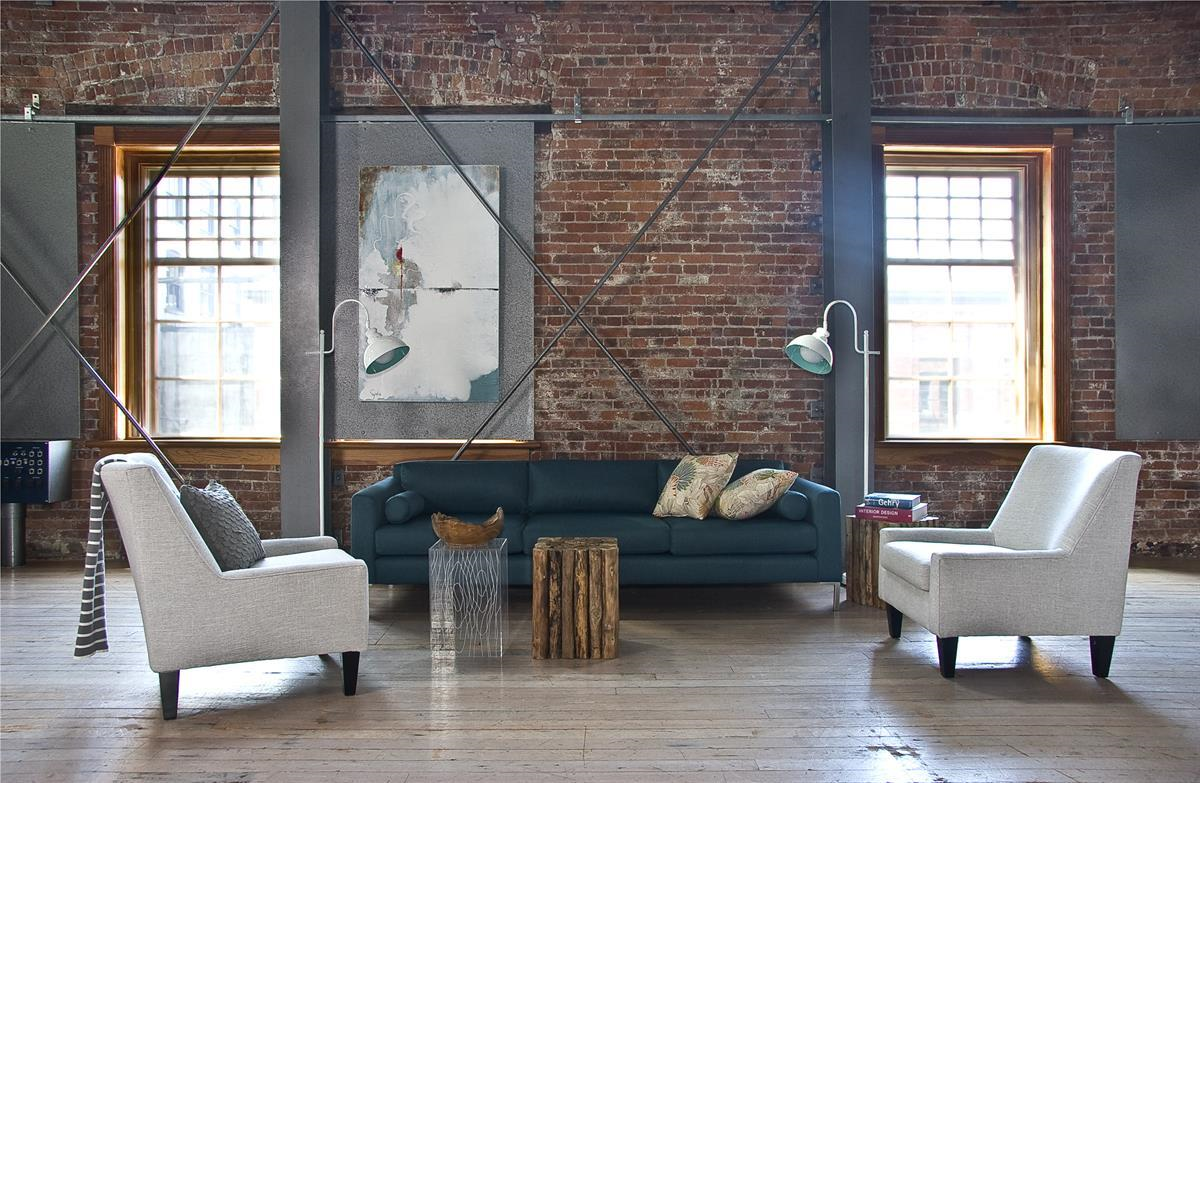 Kootenai Moon Furniture view our collections